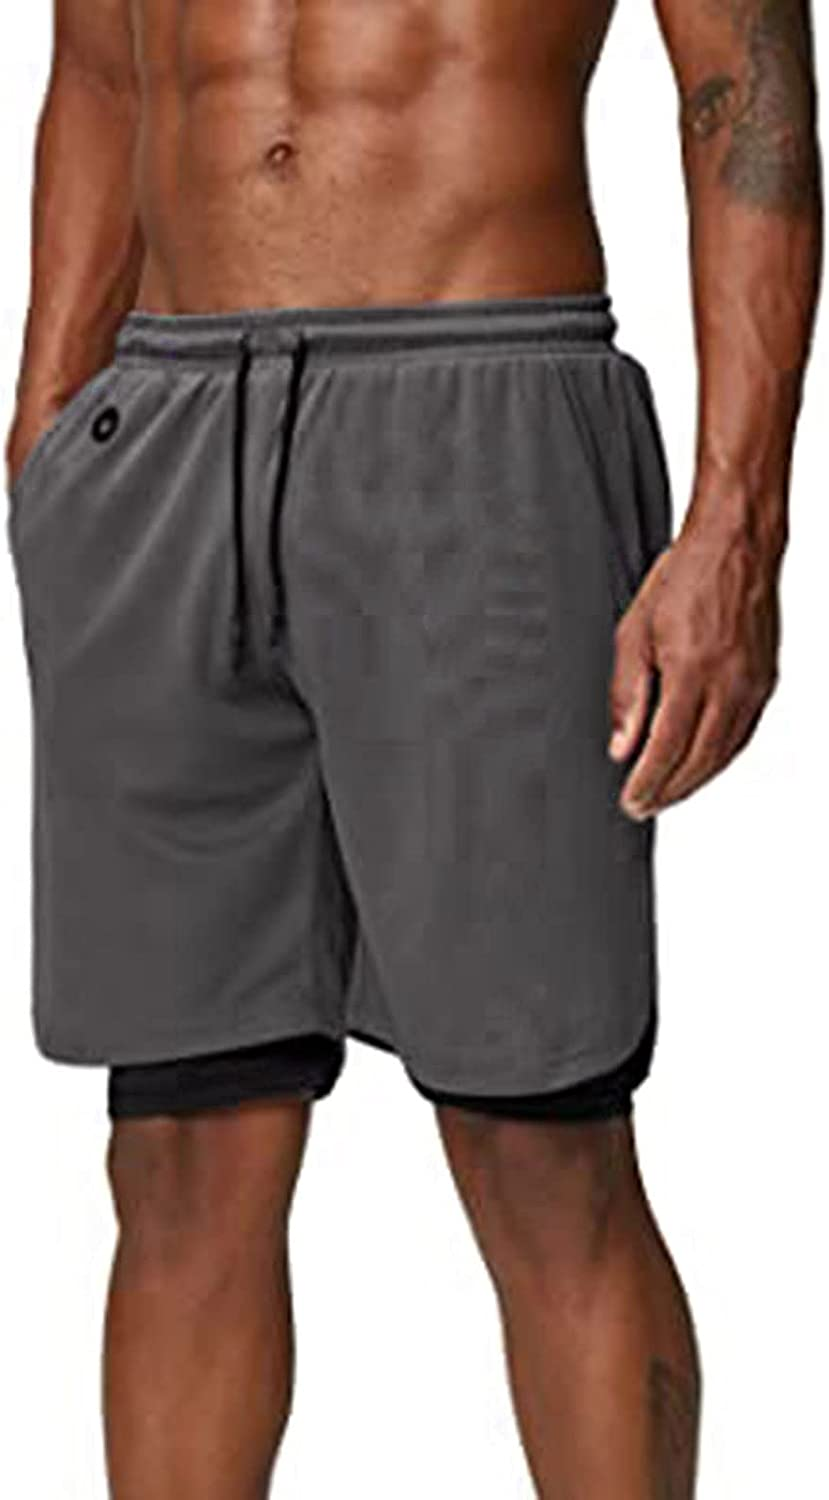 XUETON Athletic Workout Shorts for Men, 2-in-1 Stealth Quick Dry Mesh Gym Training Running Shorts with Pockets